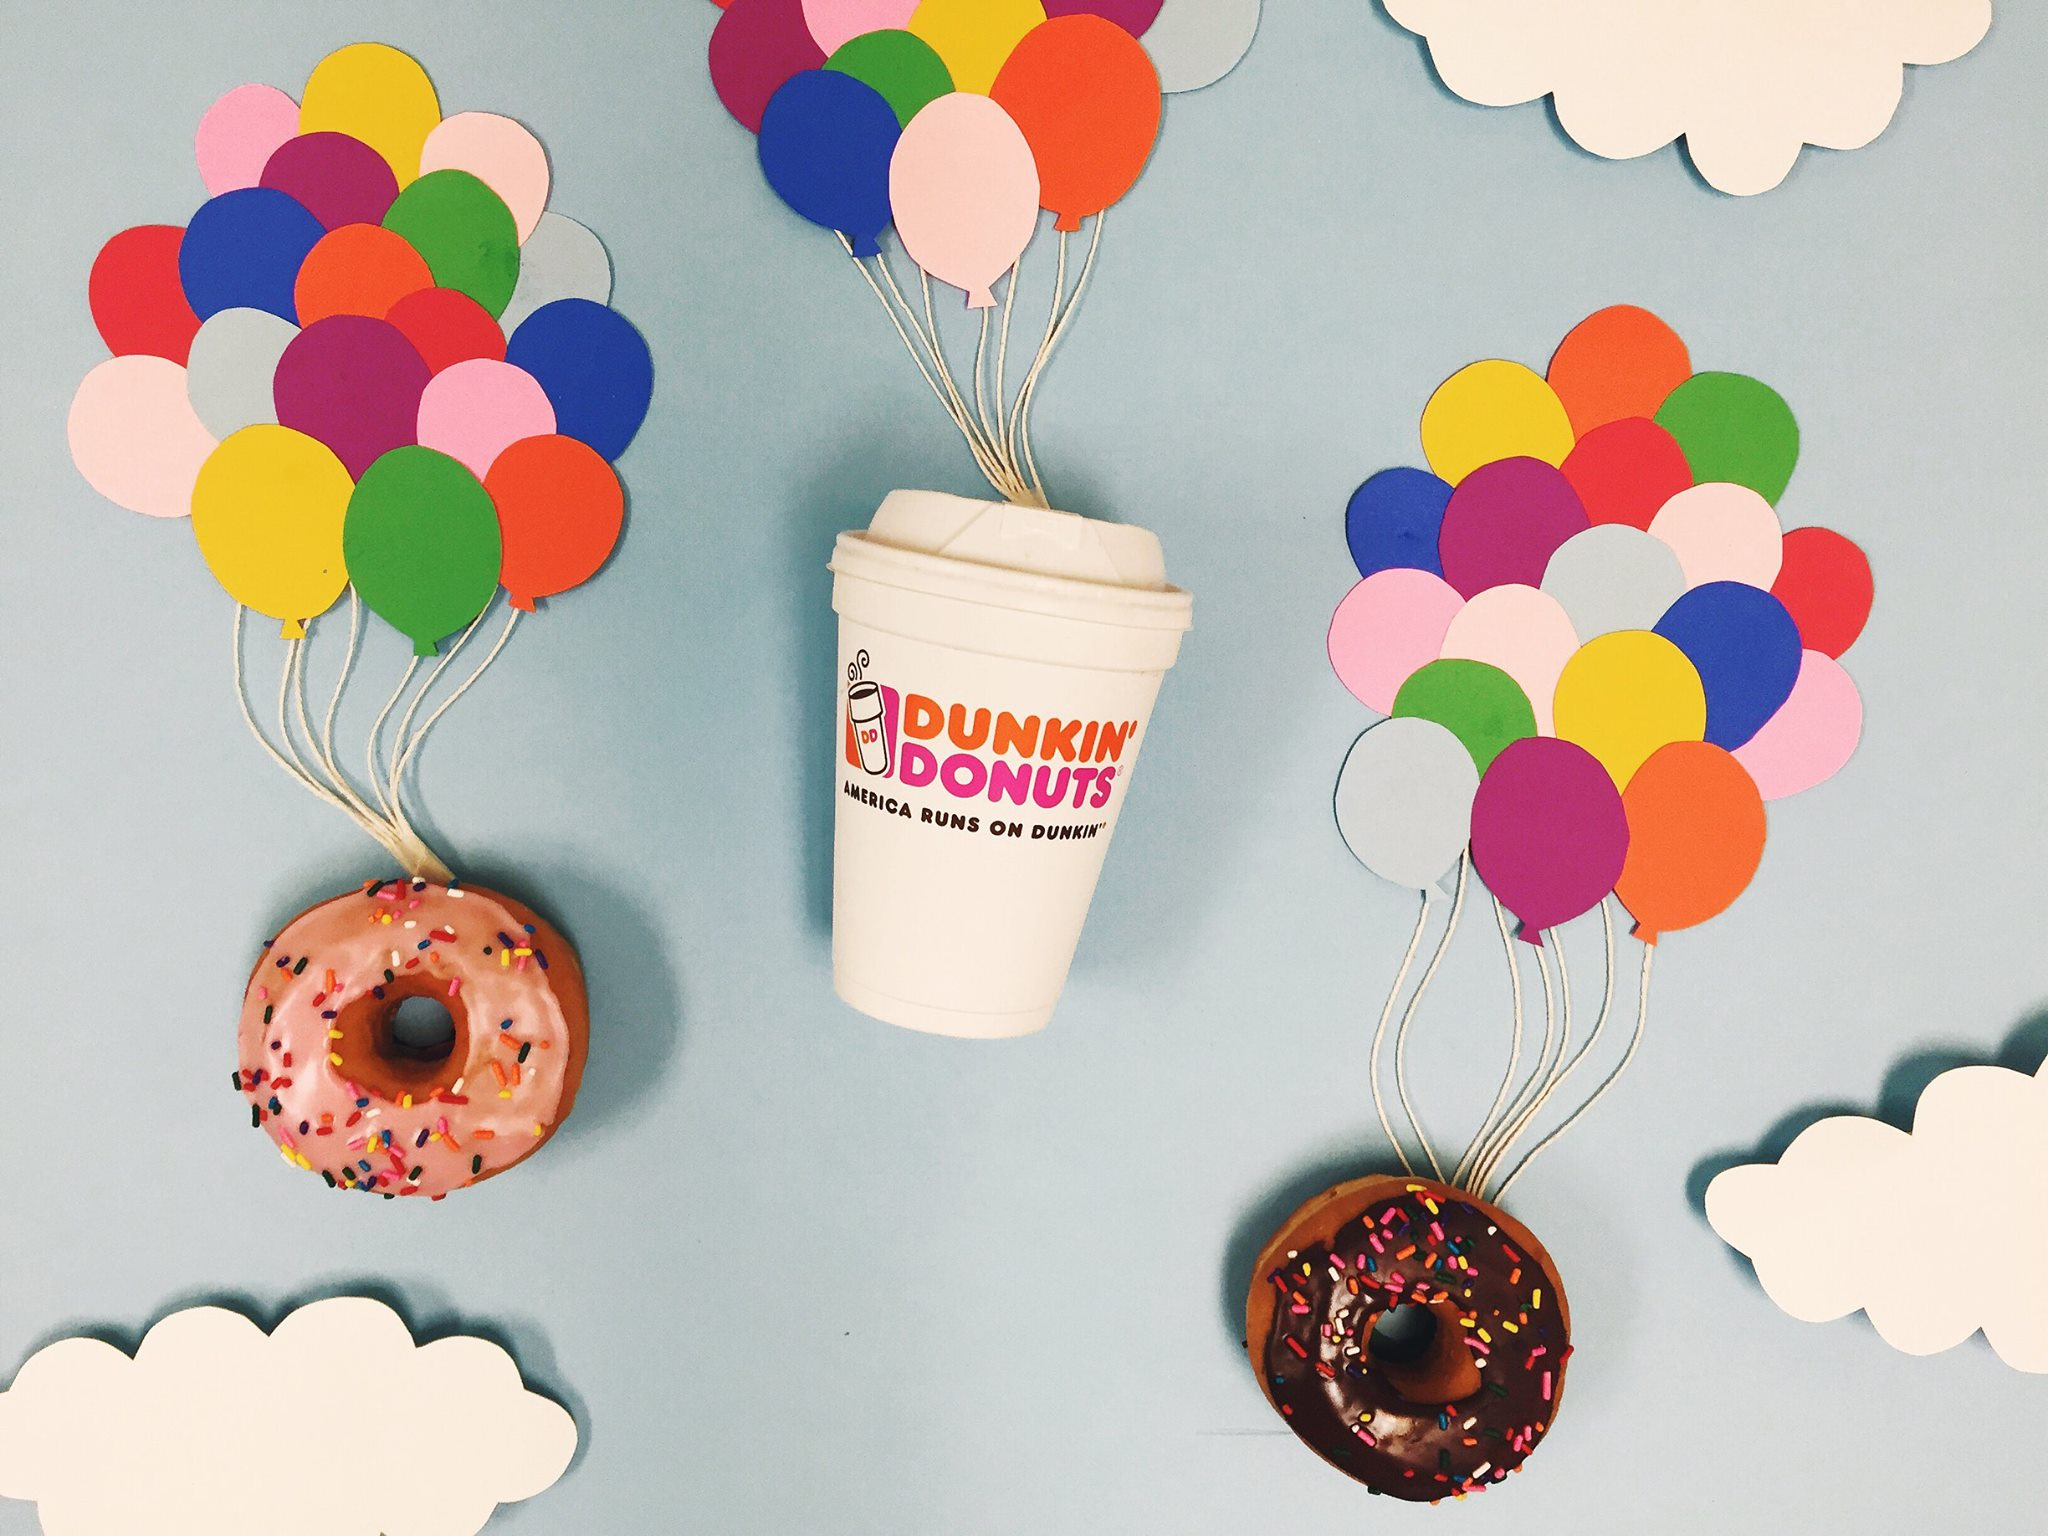 Dunkin' Donuts - Lantana Authentic